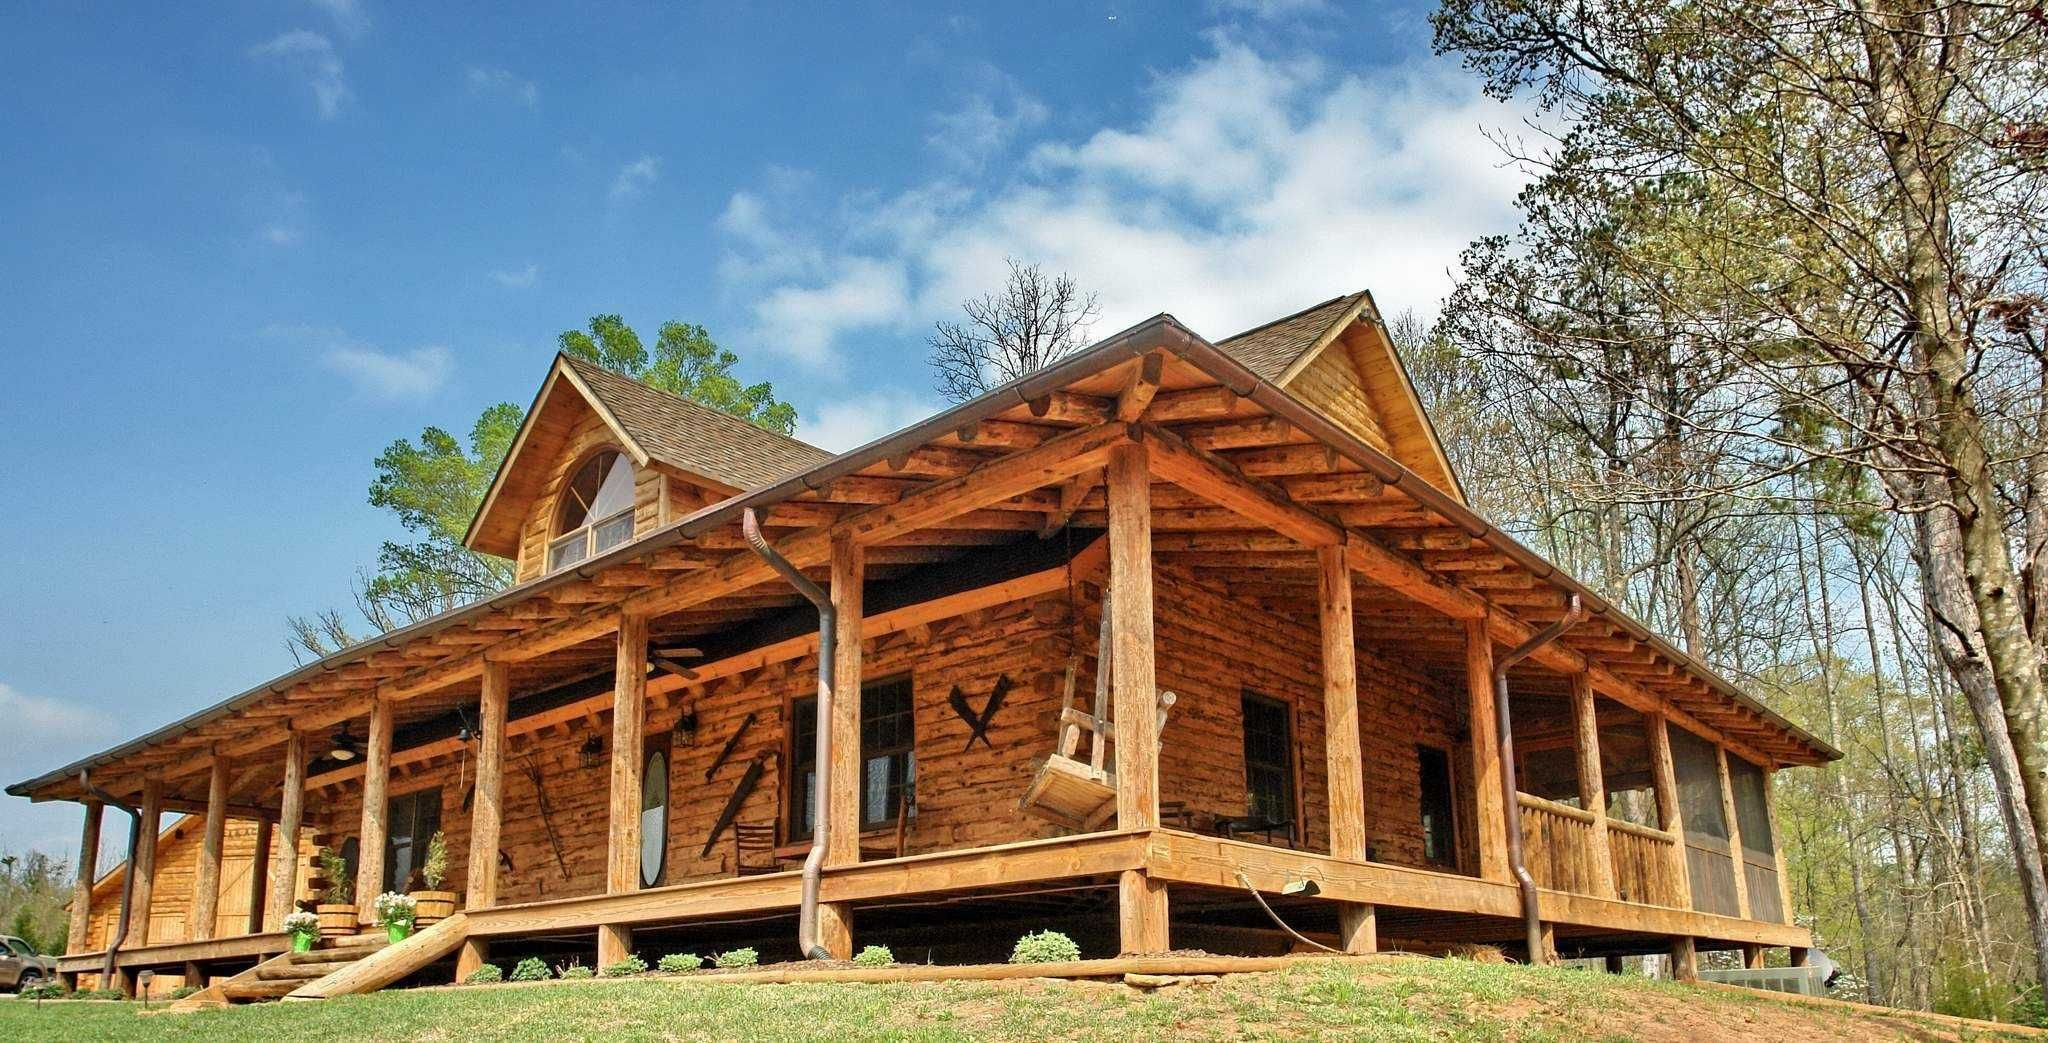 Old Fashioned Old Farmhouse With Wrap Around Porch Beautiful Old Fashioned Old Farmhouse With Wrap Arou Porch House Plans Rustic House Plans Barn Style House